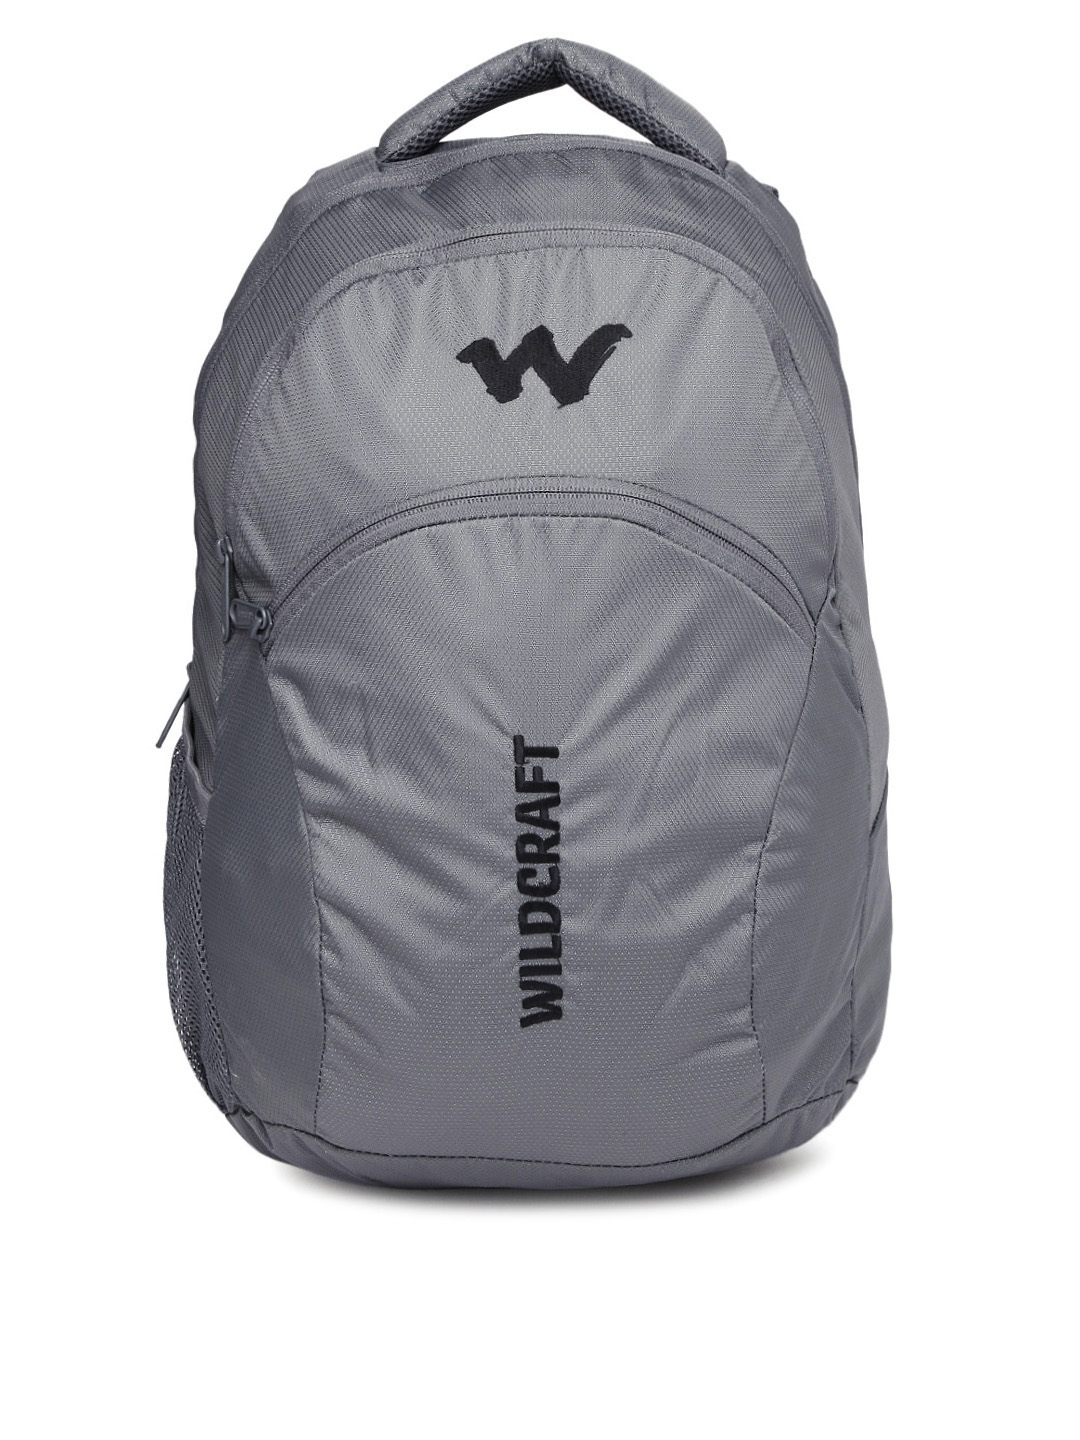 Buy Wildcraft Unisex Grey Ace 2 Backpack - Backpacks for Unisex ... 529936a1d2495